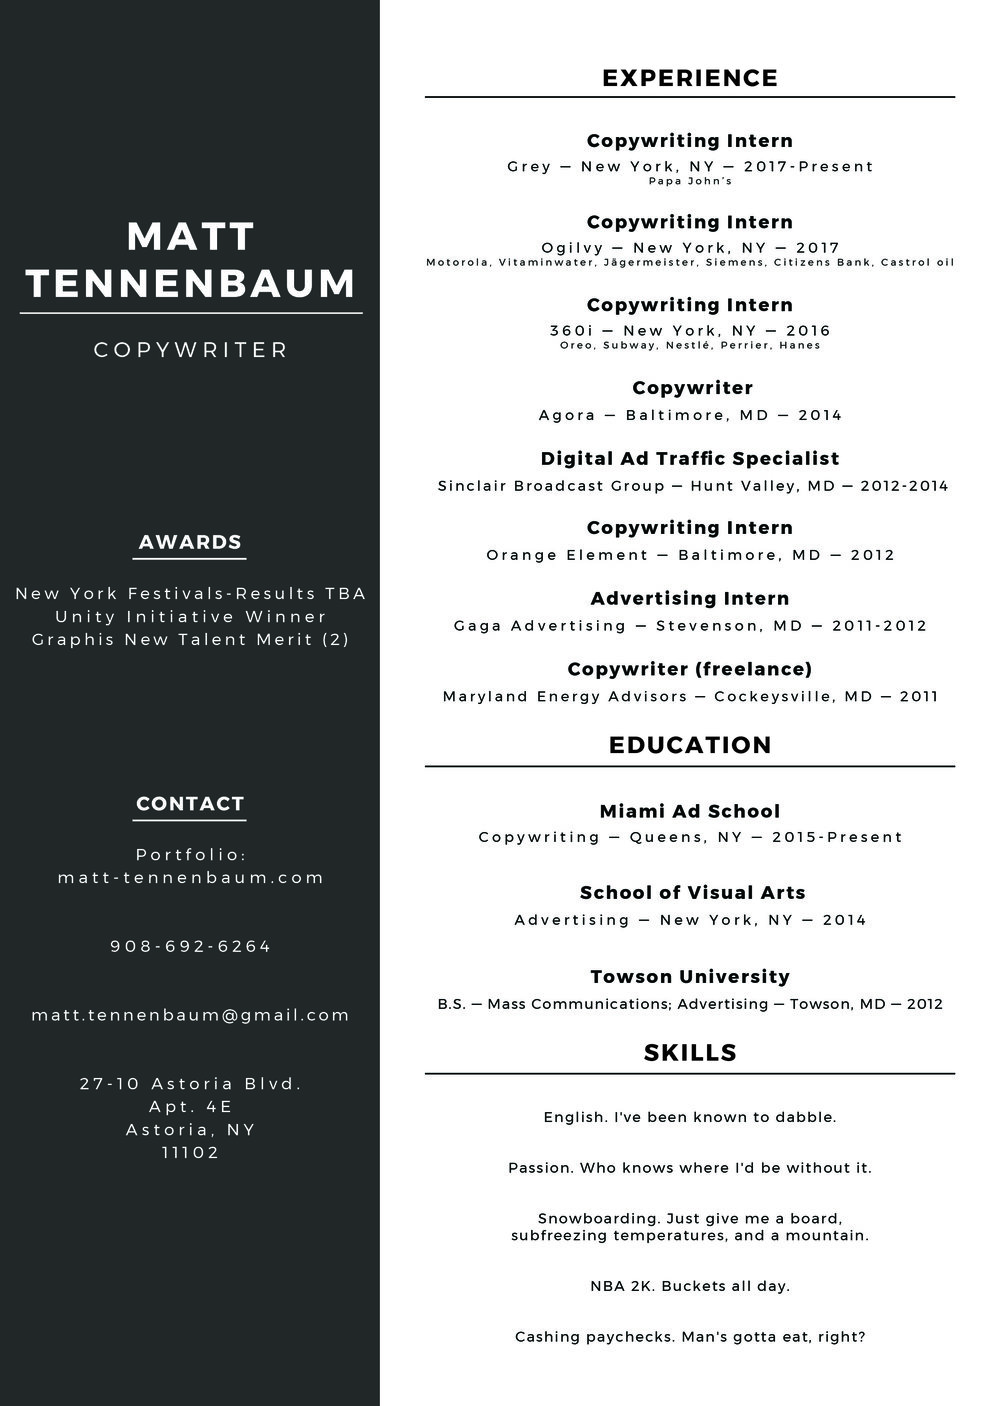 Resume - Matt Tennenbaum.jpg